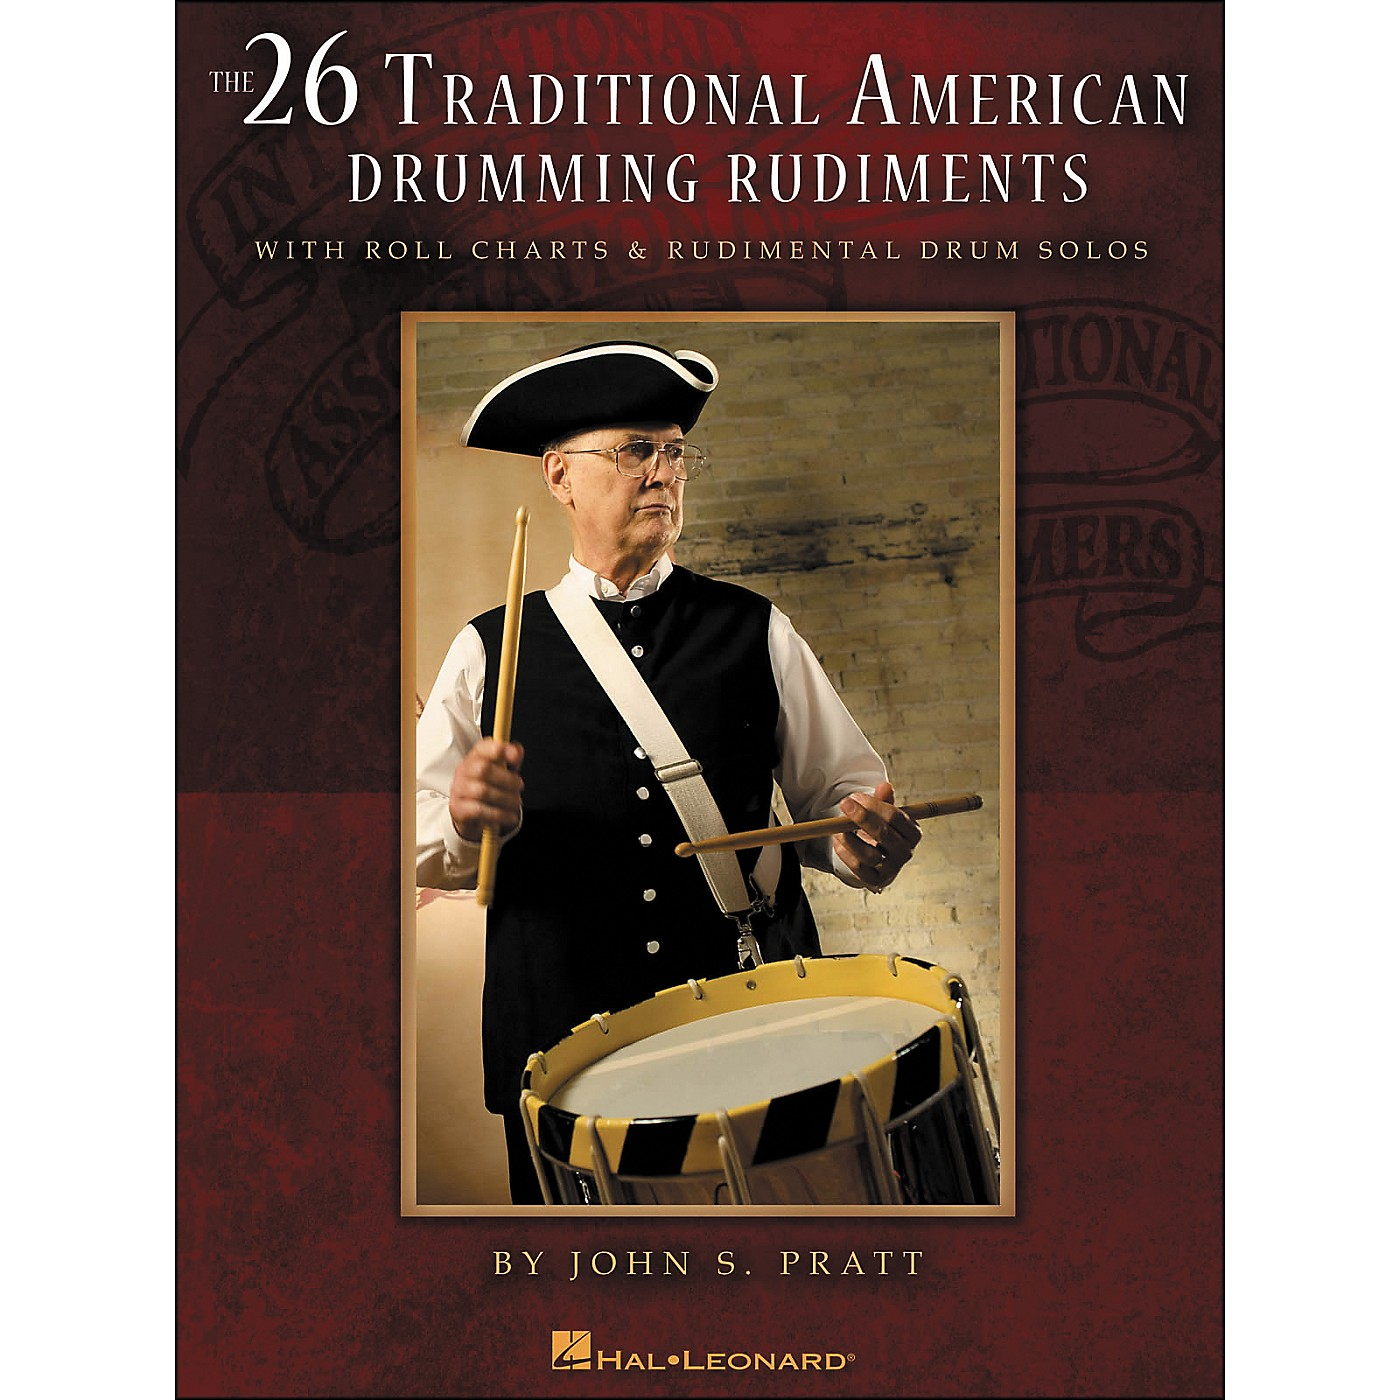 Hal Leonard 26 Traditional American Drumming Rudiments - with Roll Charts & Rudimental Drum Solos thumbnail